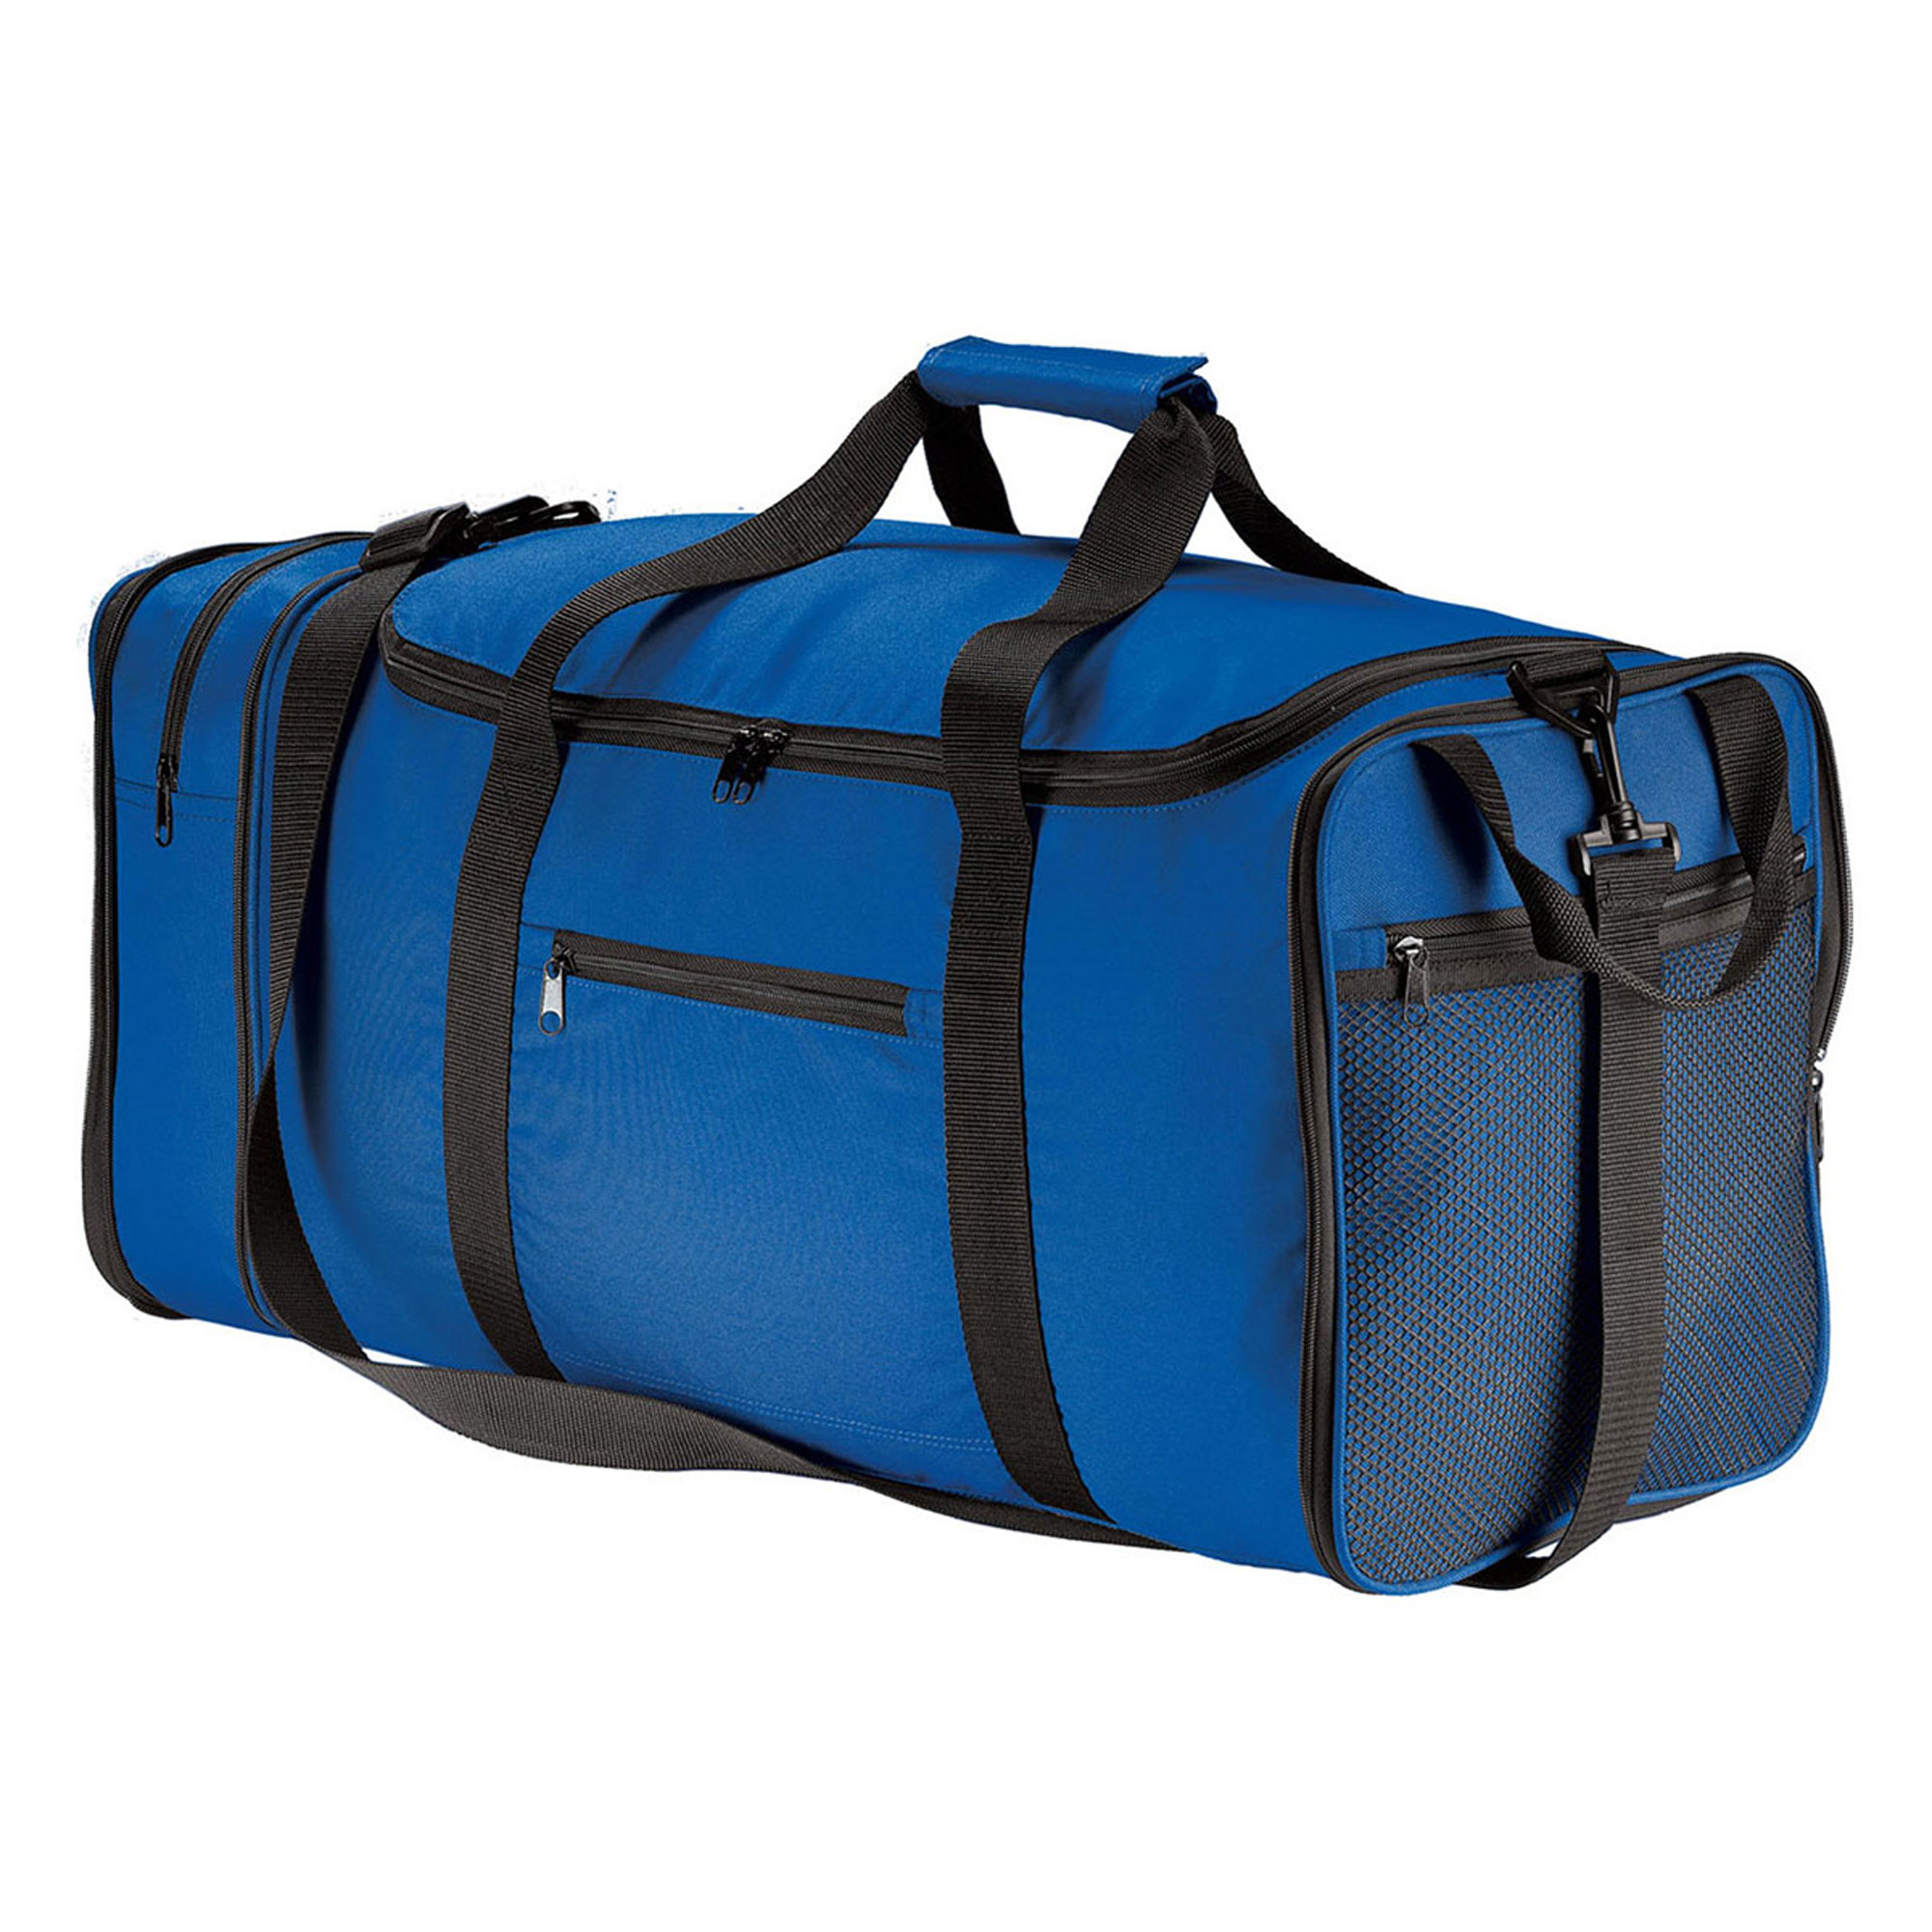 c7b0b0914676 Port Authority Perfect Packable Stylish Travel Duffel Bag – Walmart ...